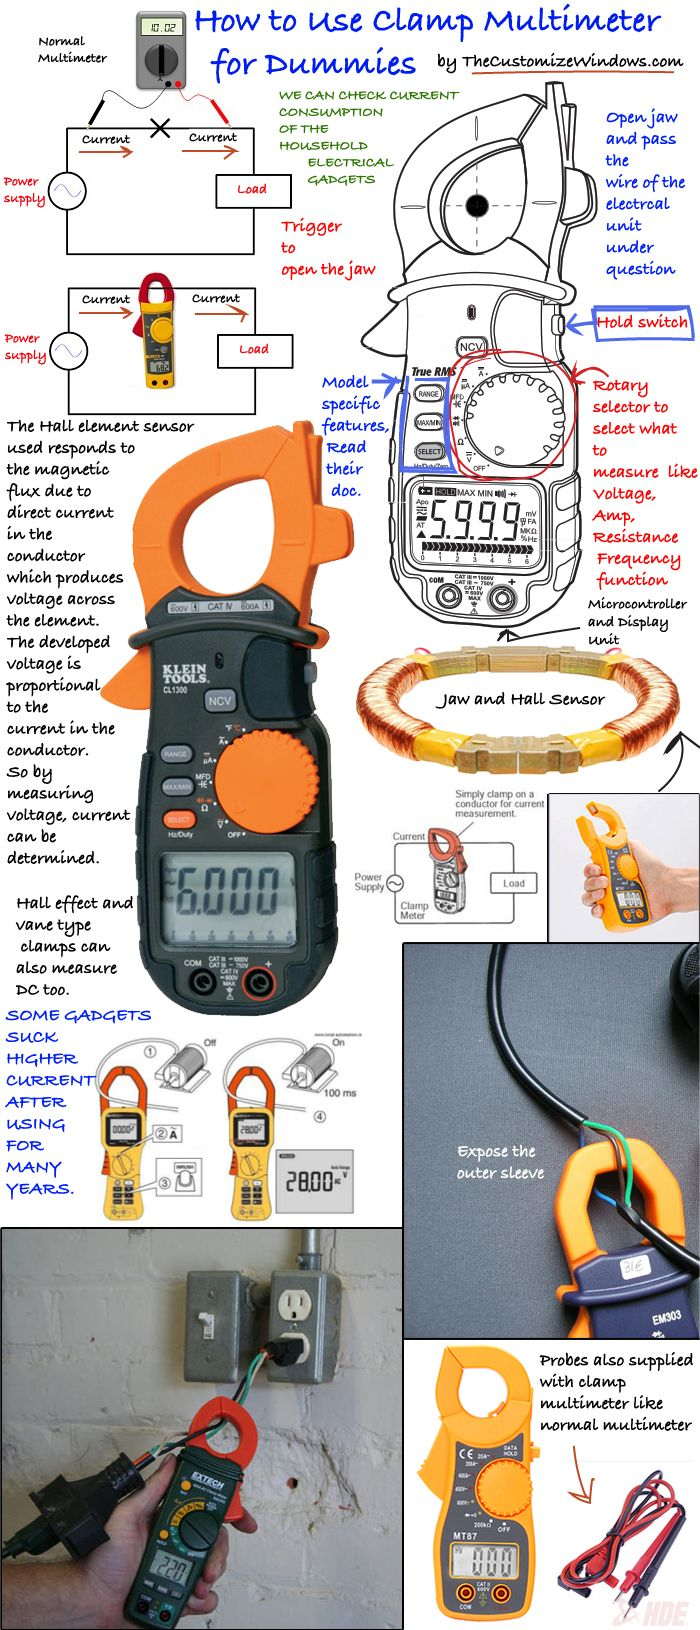 small resolution of it is great for testing real current consumed by electrical gadgets used in our homes a clamp meter is like a digital multimeter with a jaw which can